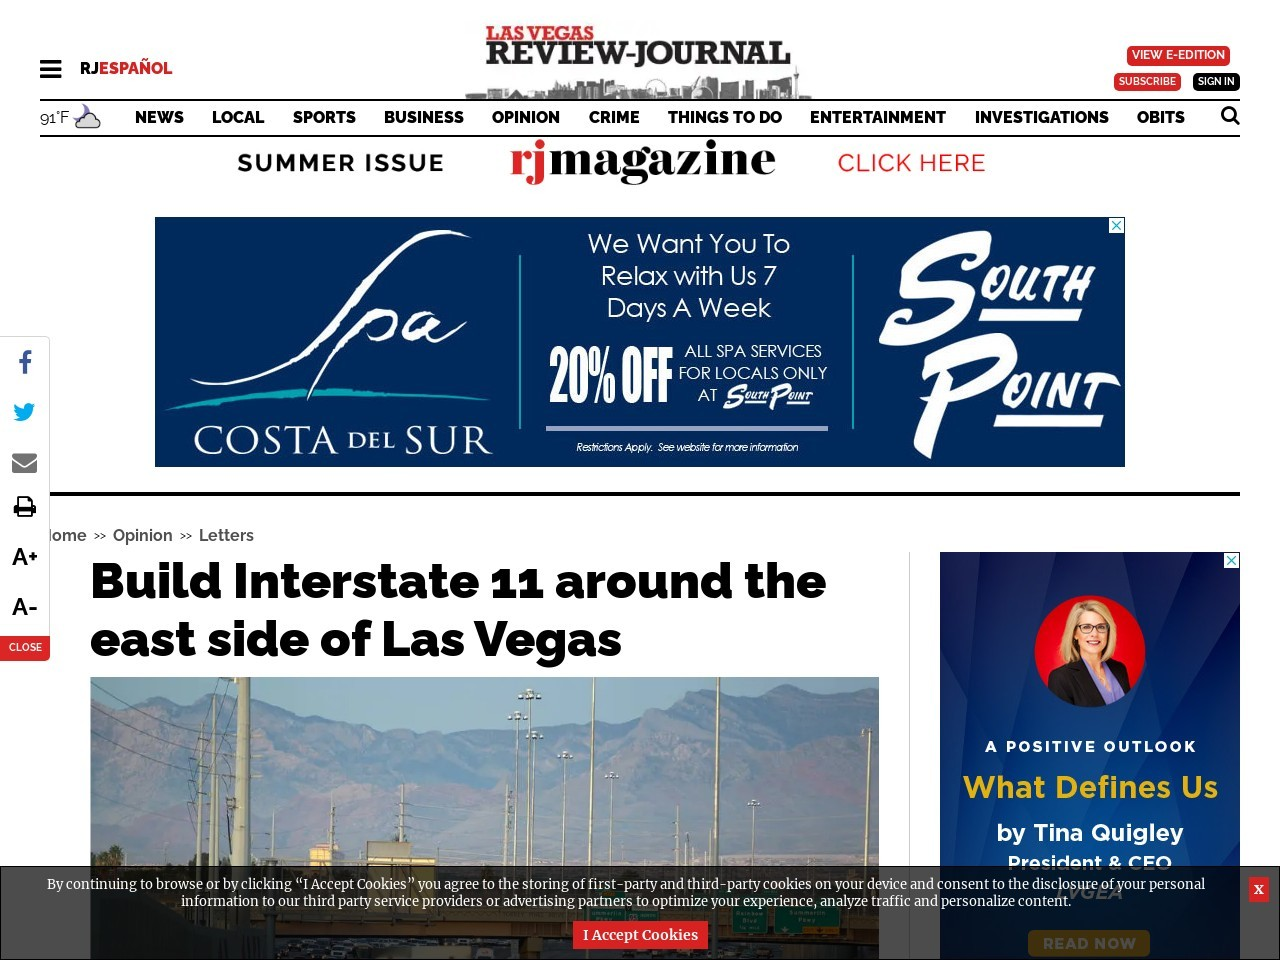 Build Interstate 11 around the east side of Las Vegas